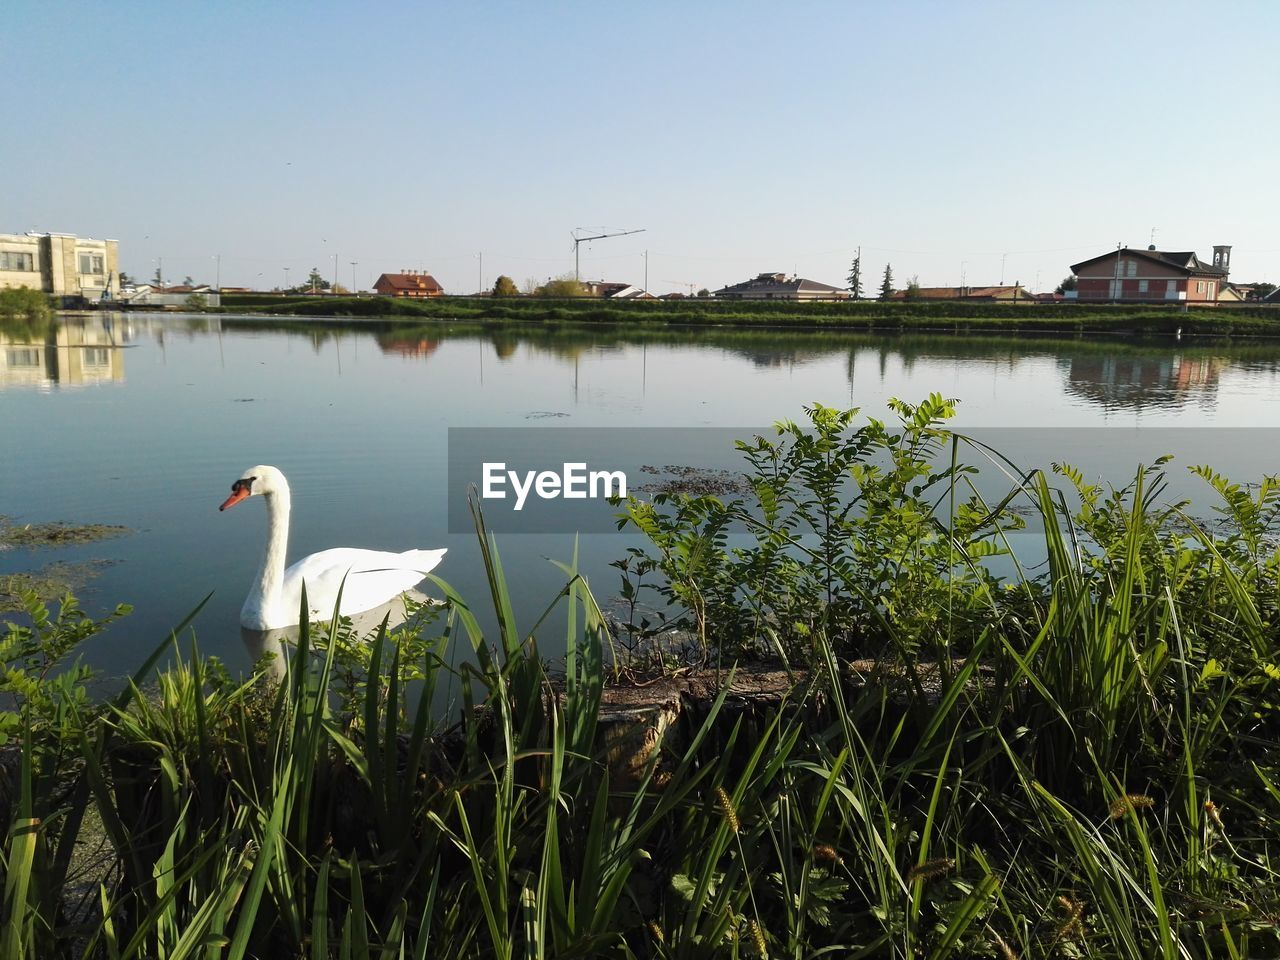 water, bird, animal themes, lake, animal, animals in the wild, sky, animal wildlife, plant, vertebrate, nature, no people, day, architecture, built structure, clear sky, reflection, one animal, building exterior, outdoors